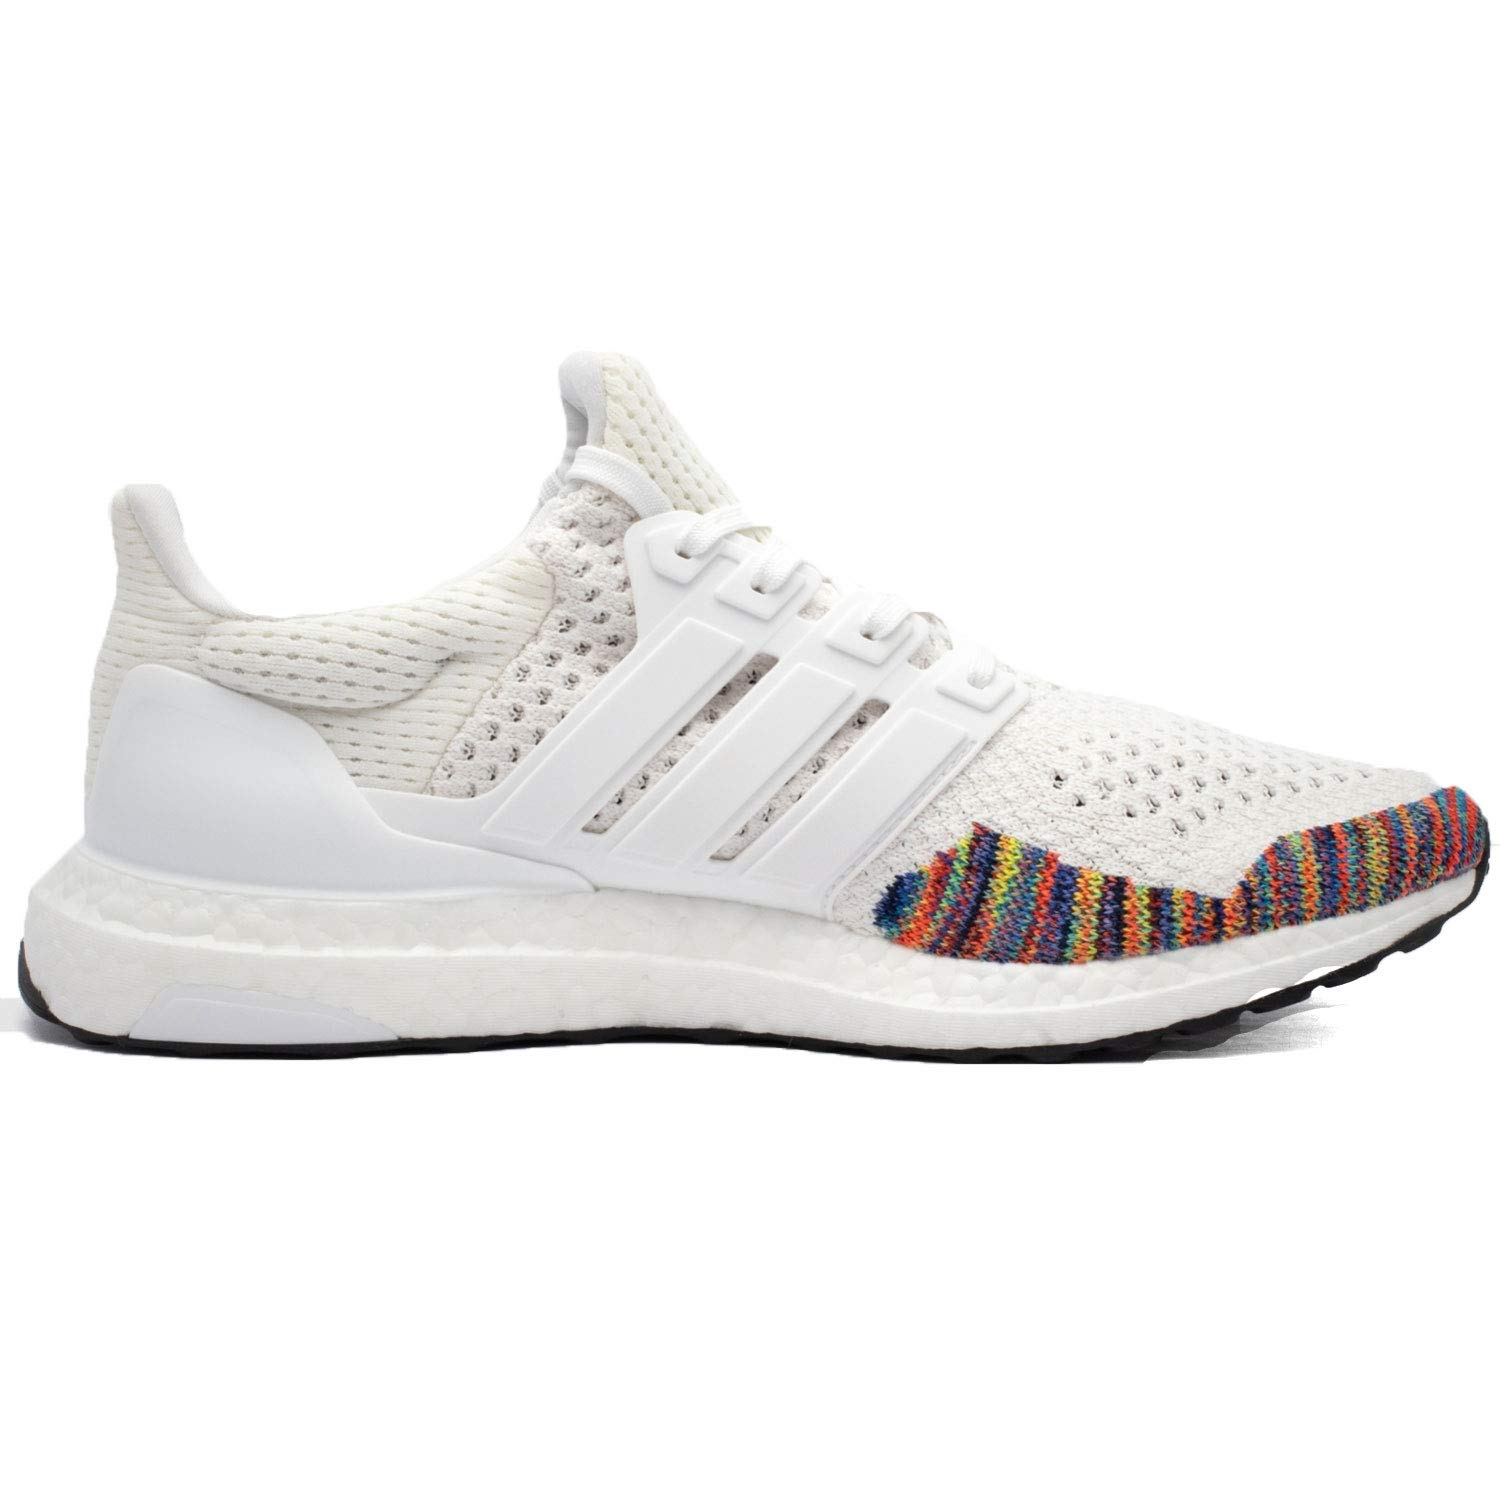 adidas Men's Ultraboost LTD White/Black BB7800 (Size: 6)